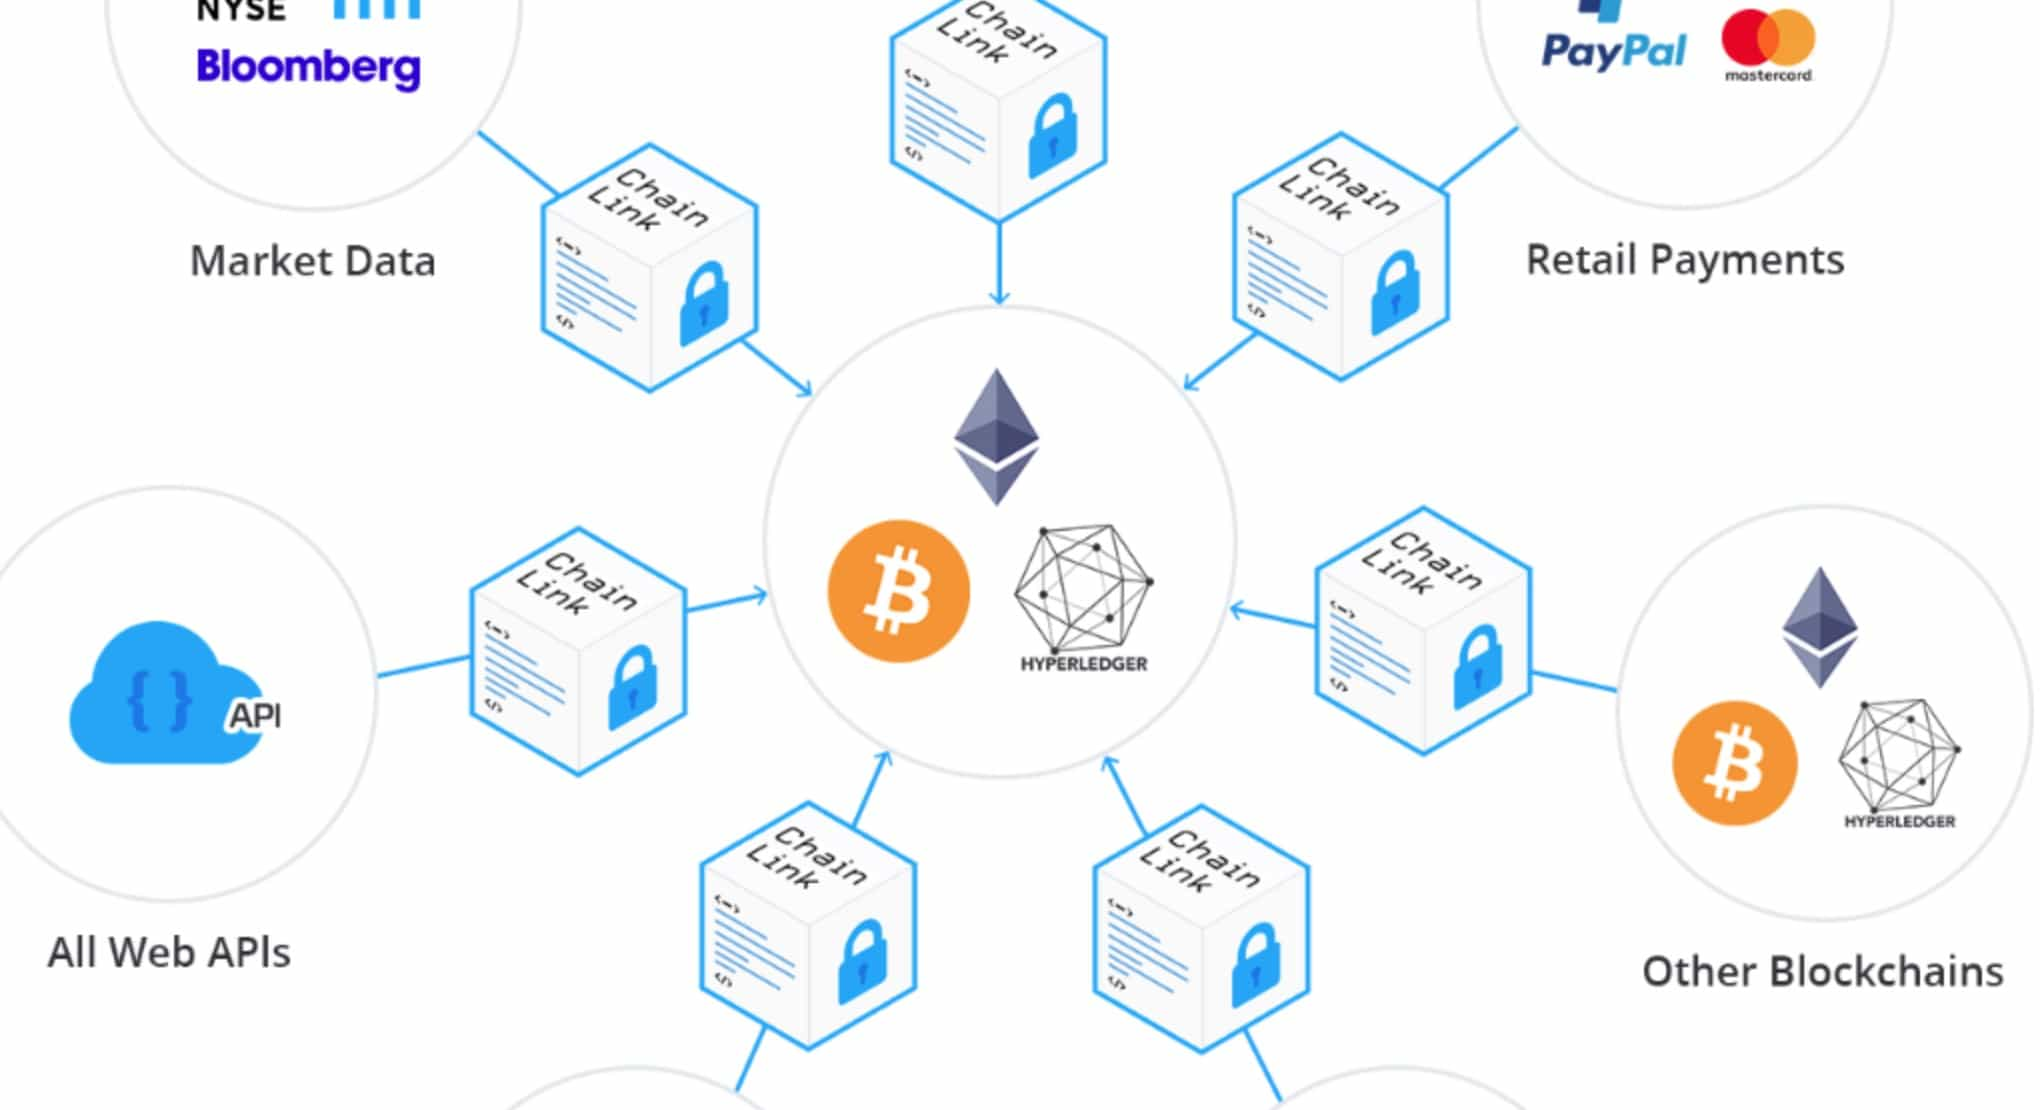 how Chainlink works sheme